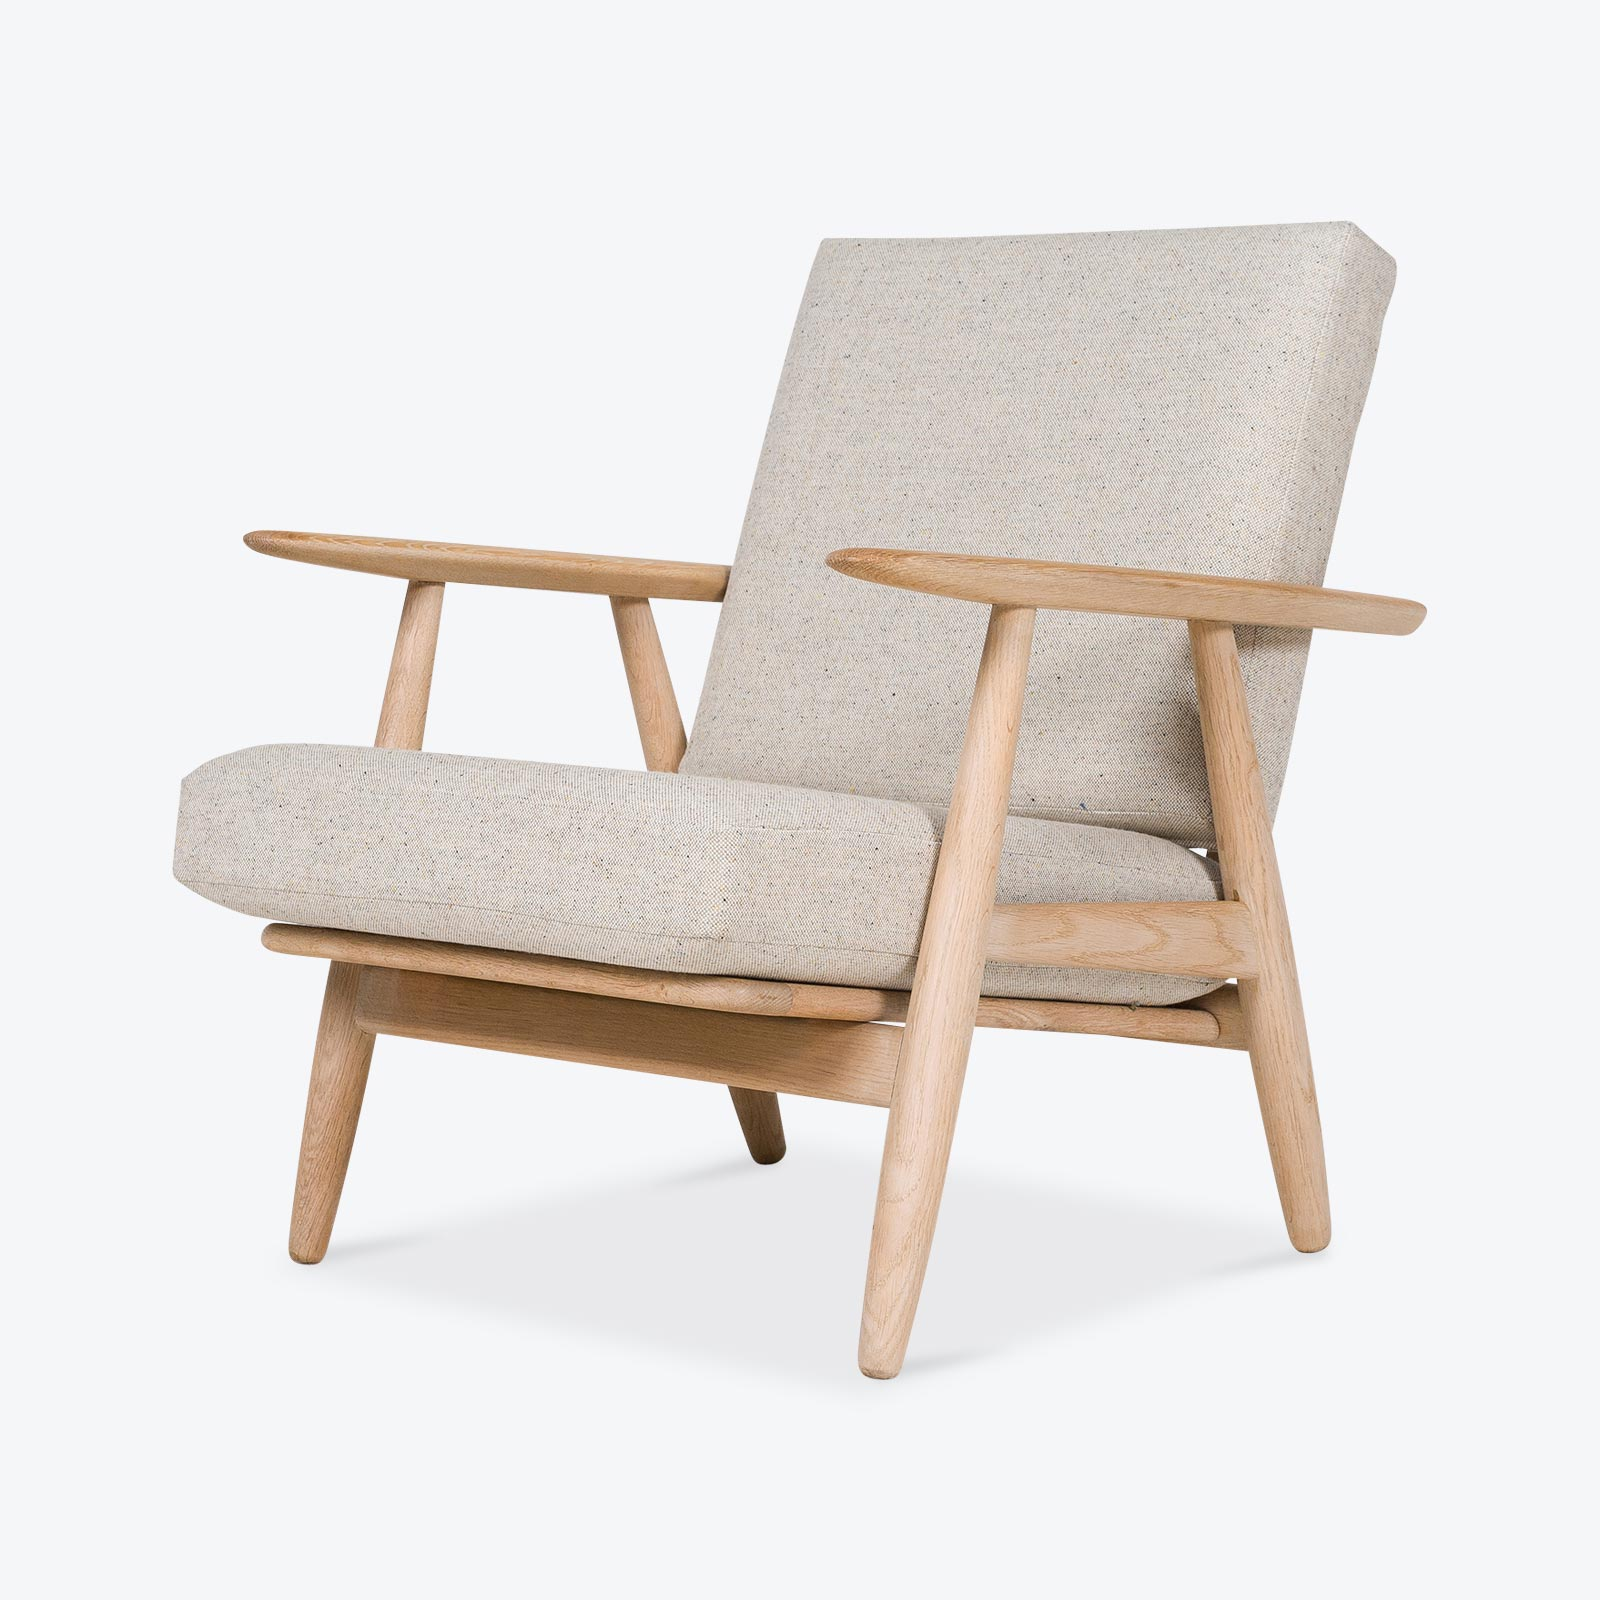 ge 240 lounge chair by hans wegner for getama in oak 1955 denmark